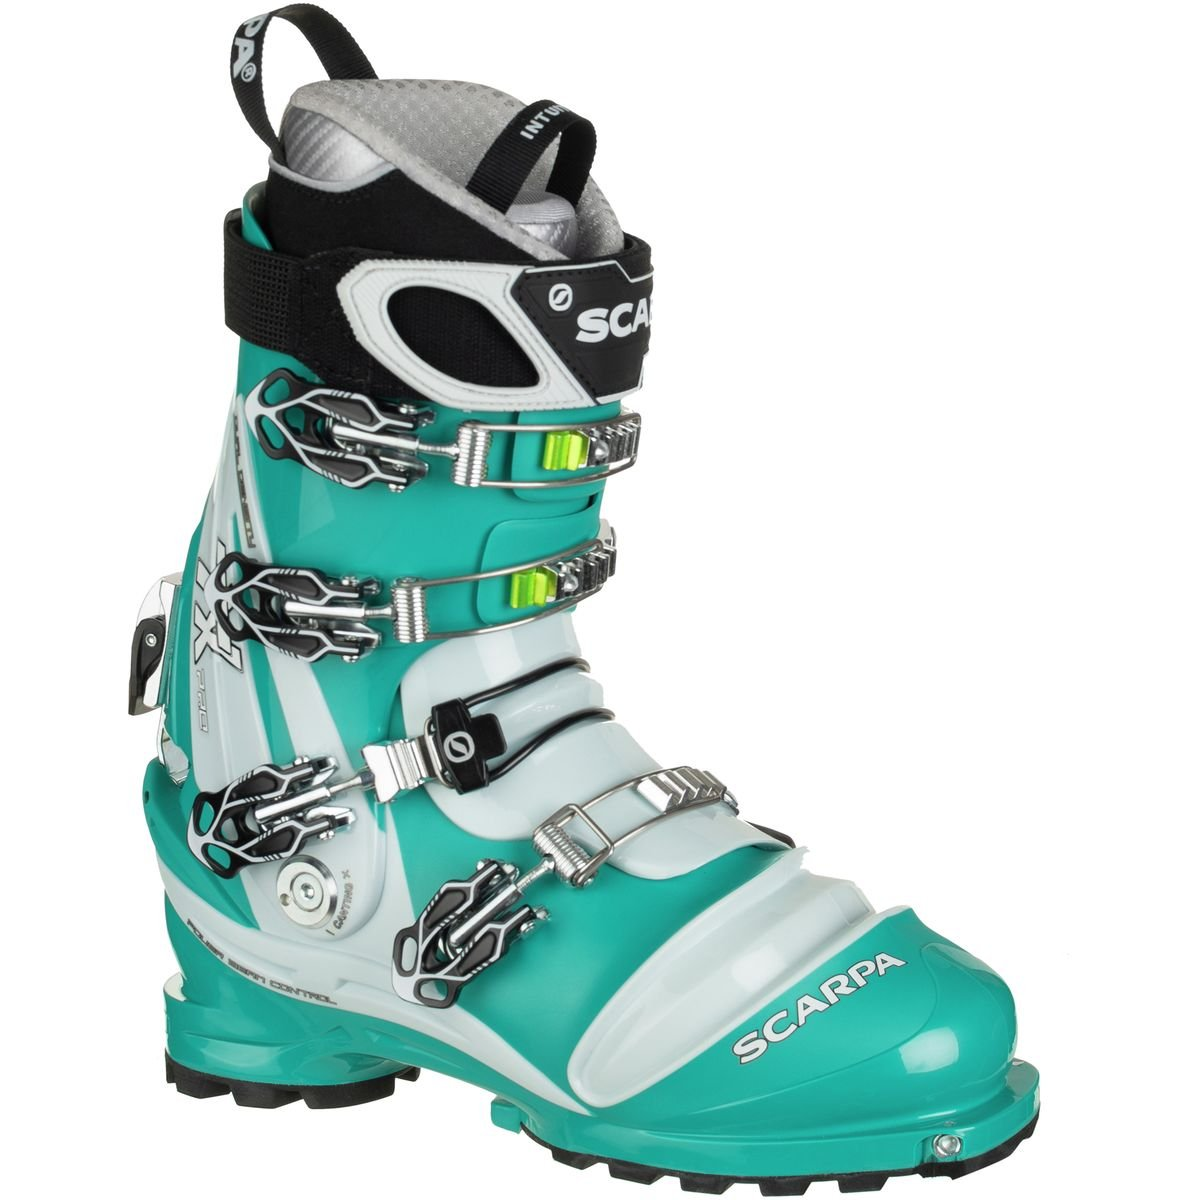 Scarpa TX Pro Telemark Boot - Women's Emerald/Ice Blue, 23.5